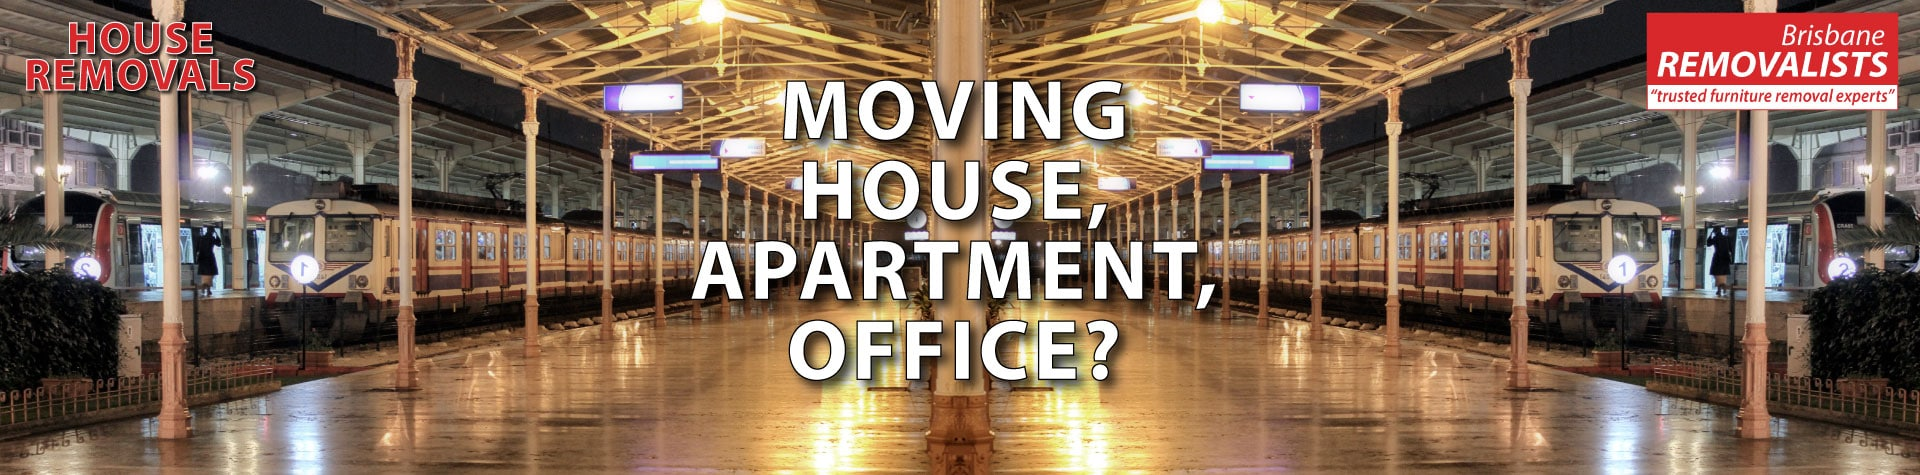 Moving House, Apartment or Office blog feature image